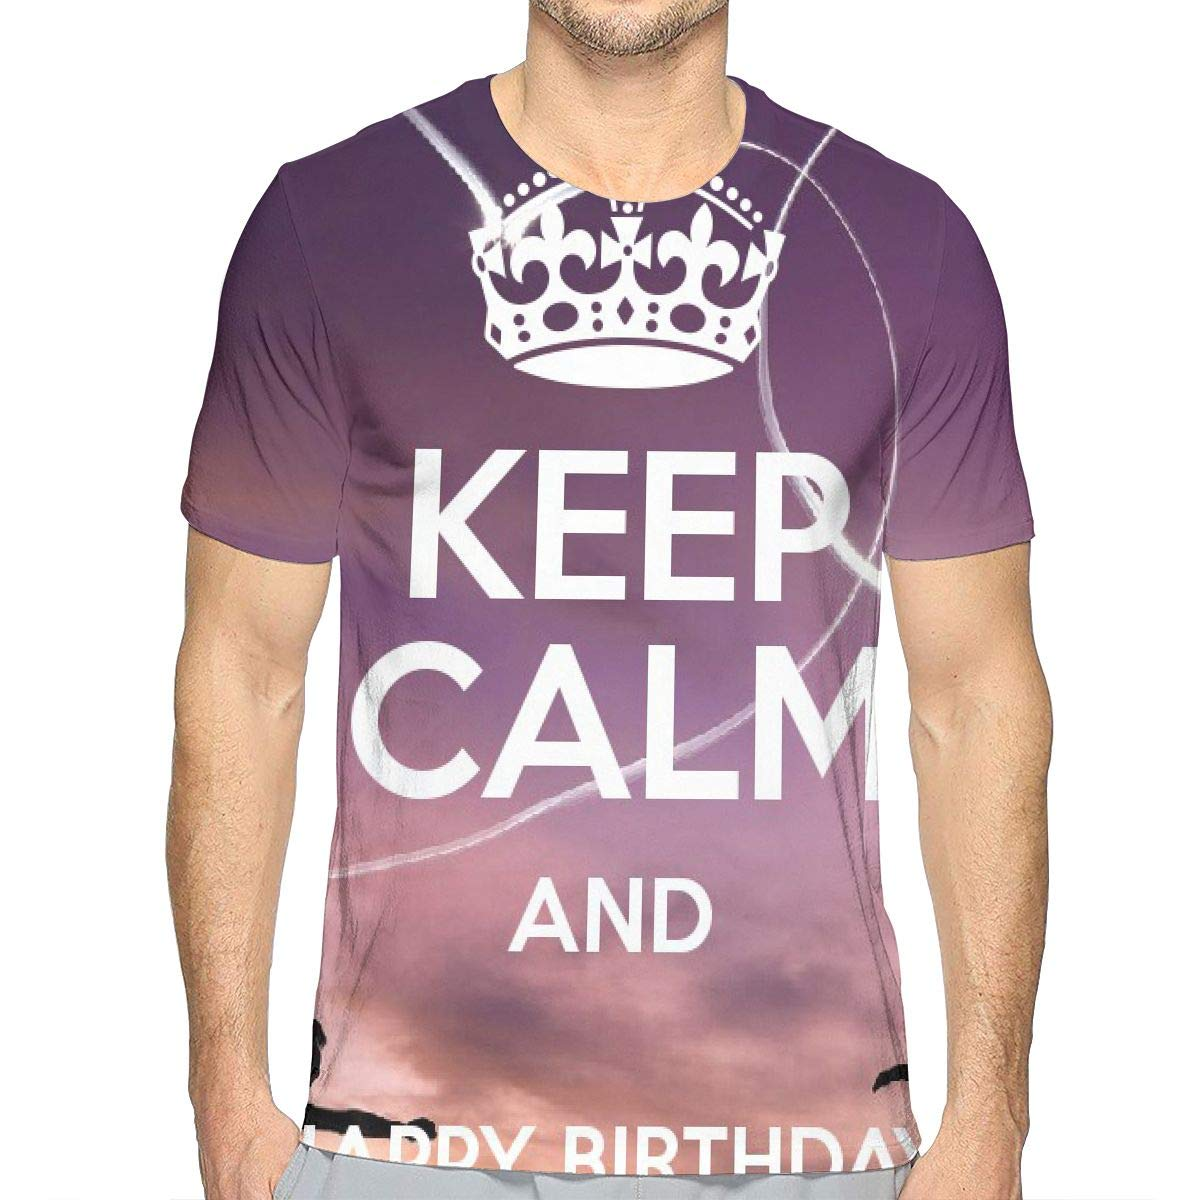 Keep Calm and Happy Birthday Mens 3D Novelty T Shirts Funny Graphic Tees Crewneck Short Sleeve Summer Top